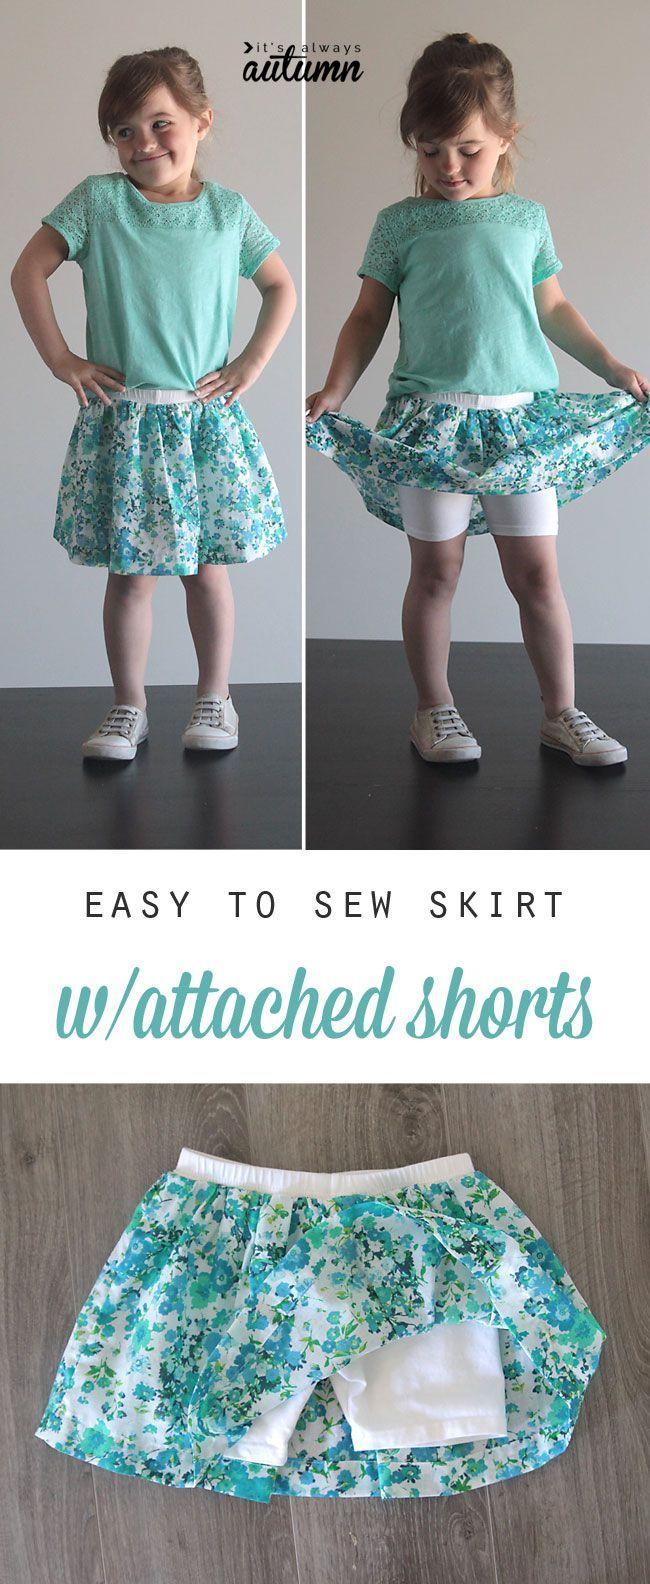 Add fabric to purchased shorts to make a cute skirt with attached shorts - this looks so easy! diy sewing tutorial.